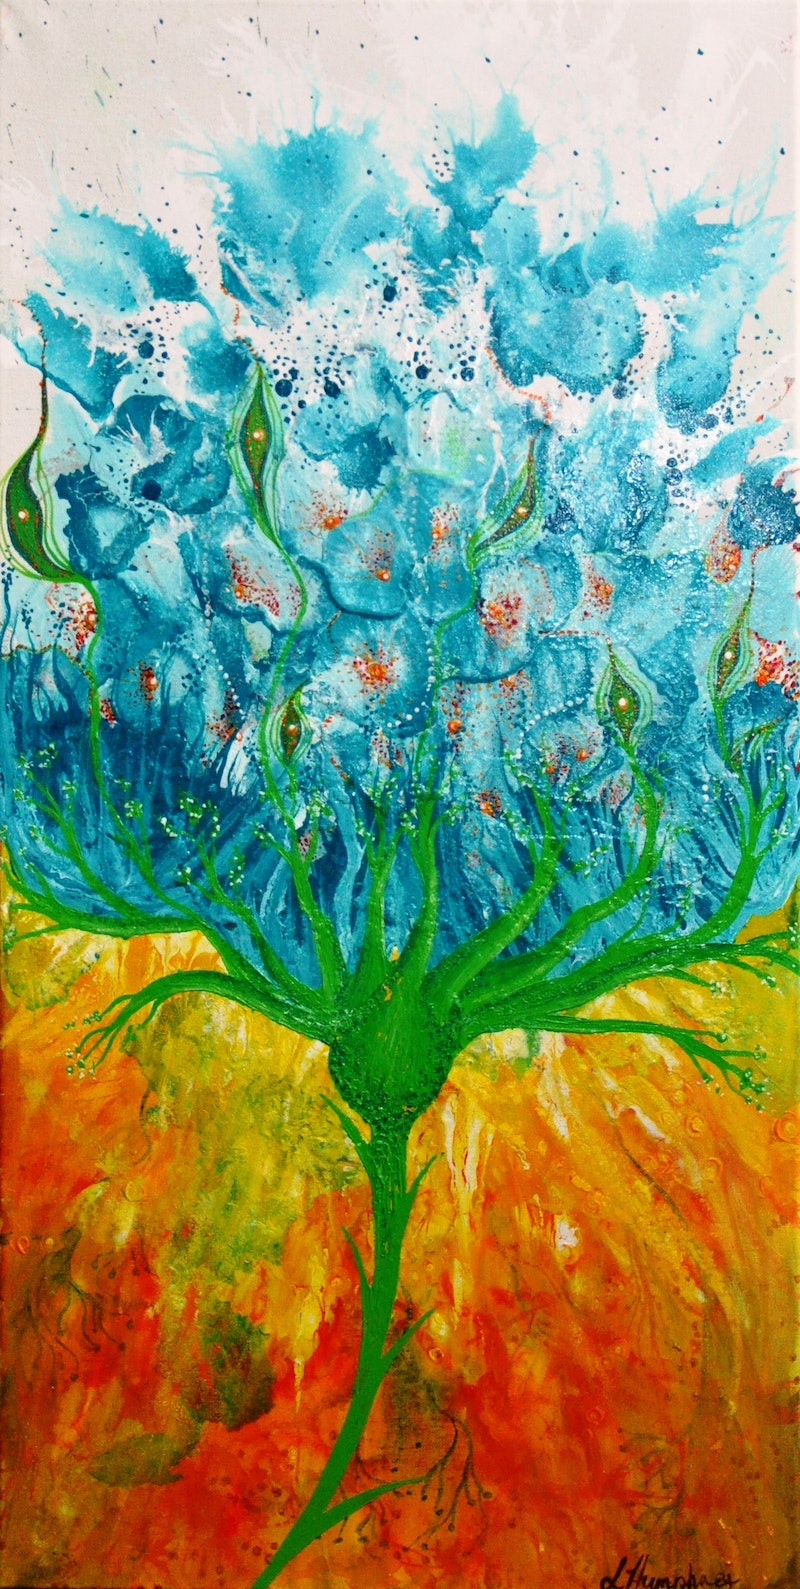 Blue Lotus By Lisa Humphrey Paintings For Sale Bluethumb Online